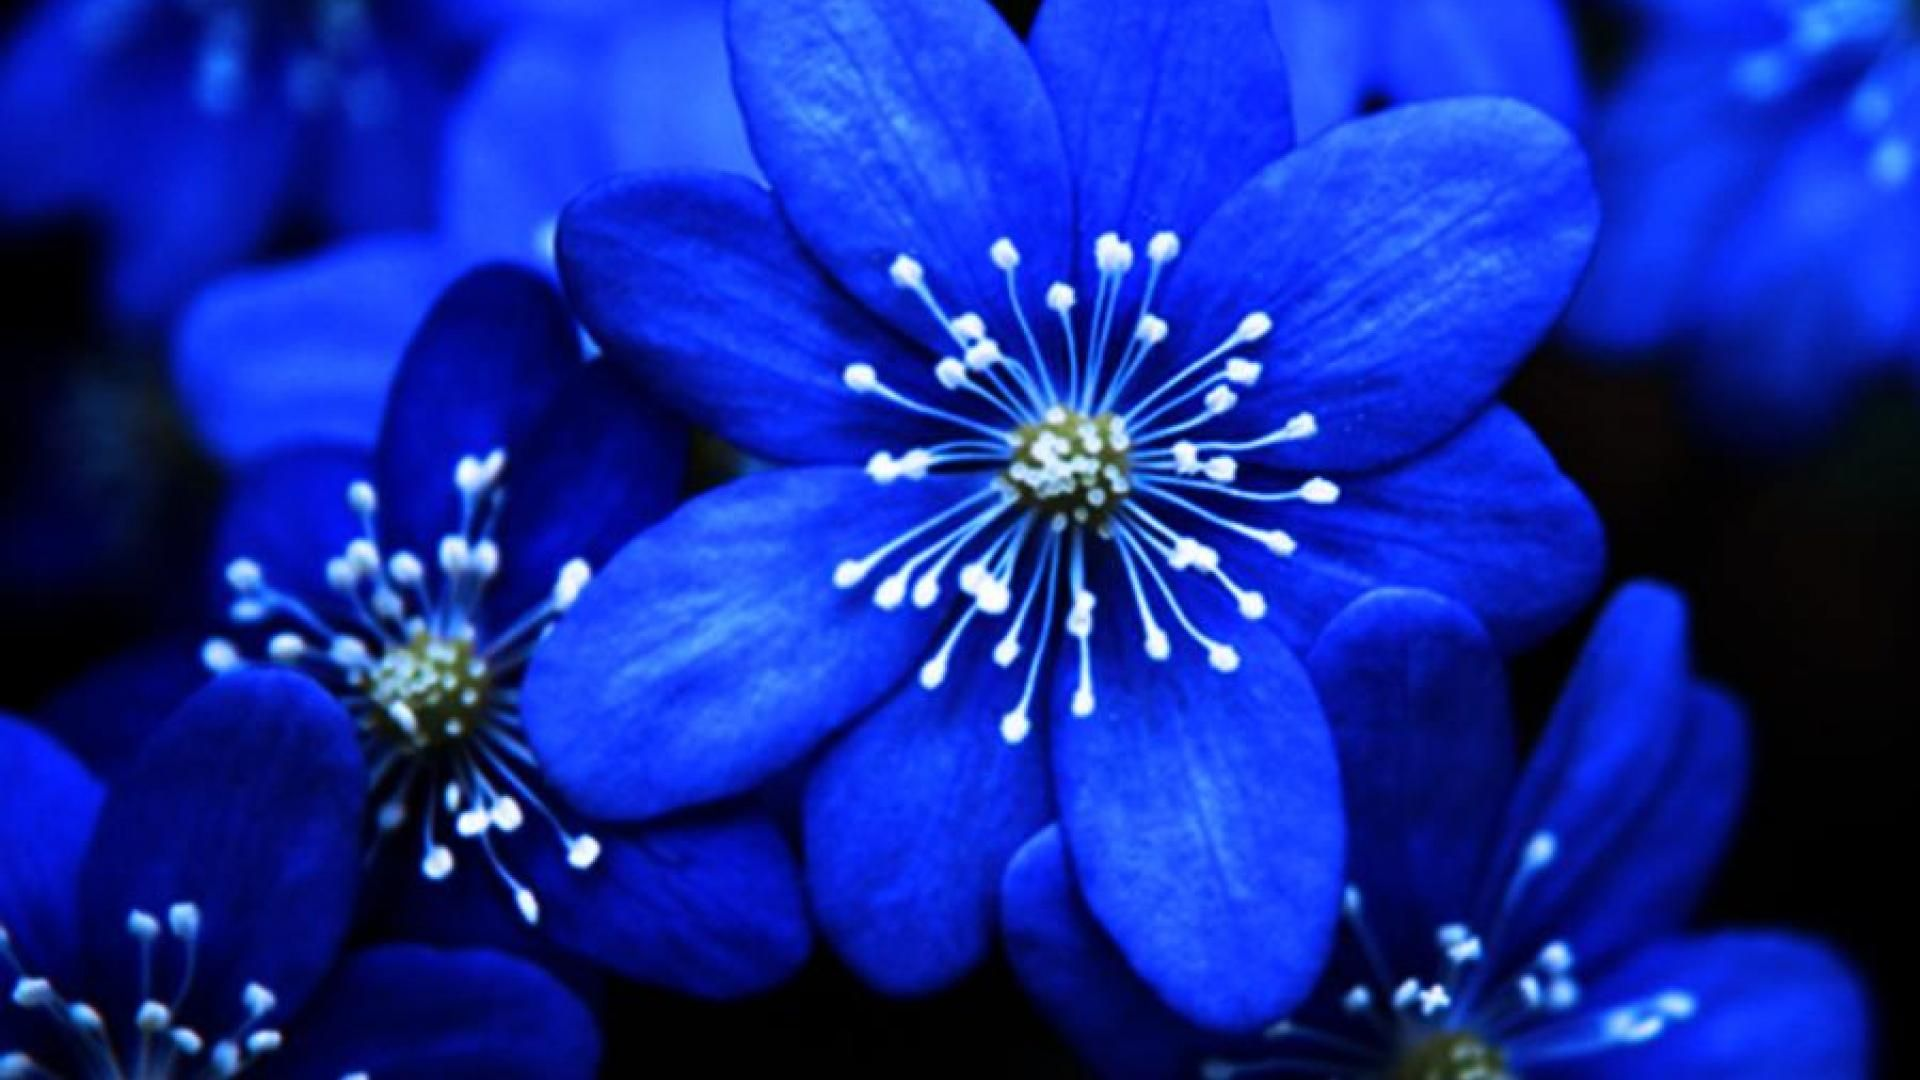 wallpaper flowers bouquet blue - photo #40